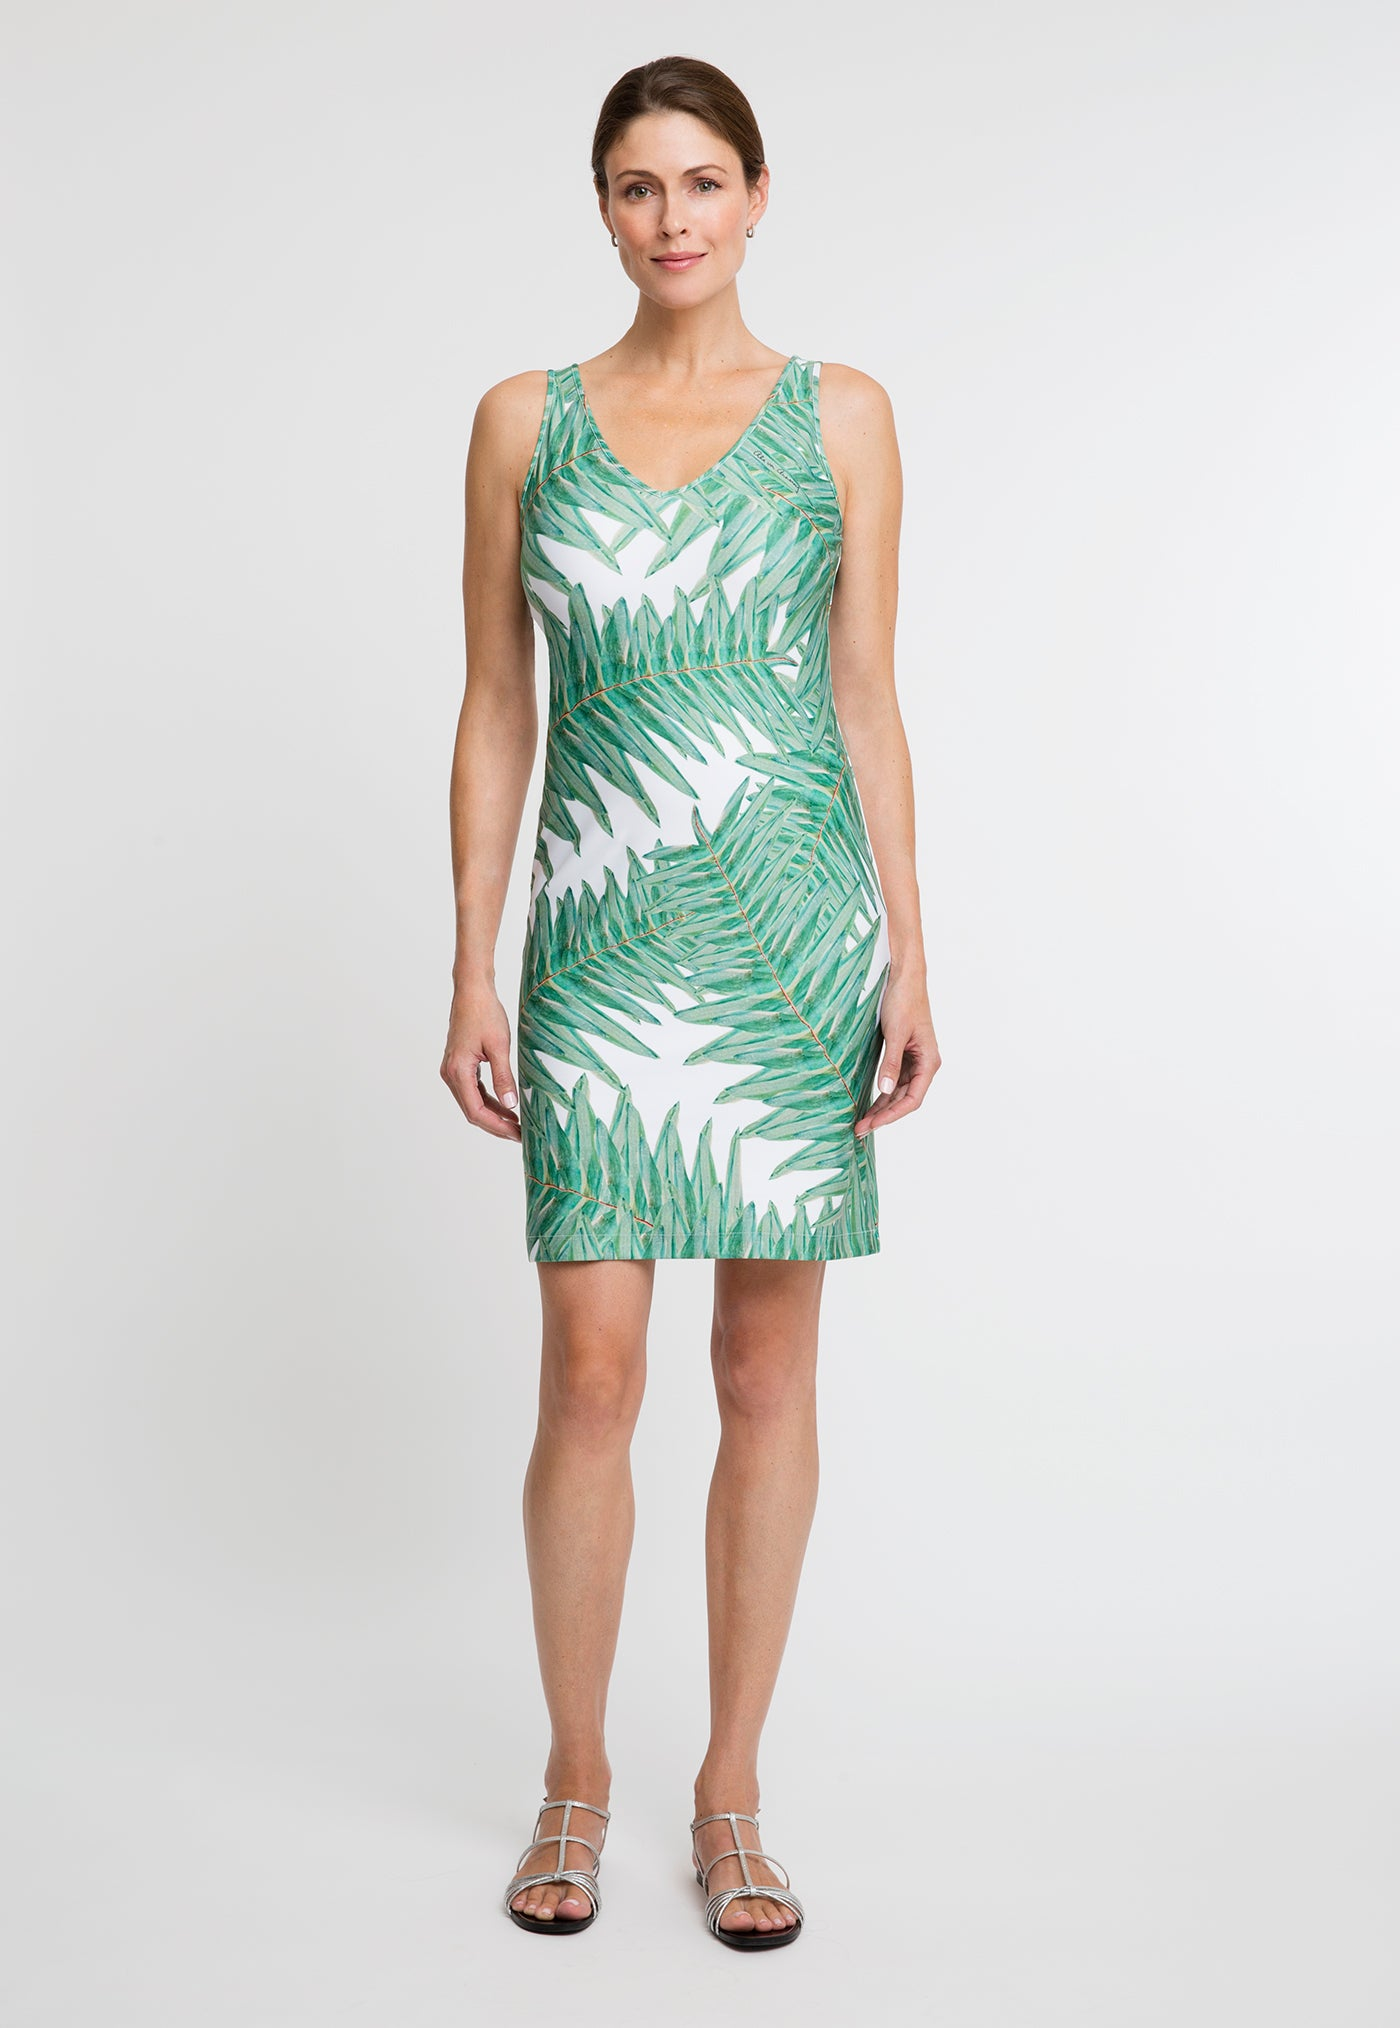 Lavinia Short Dress in Queen Palm front view